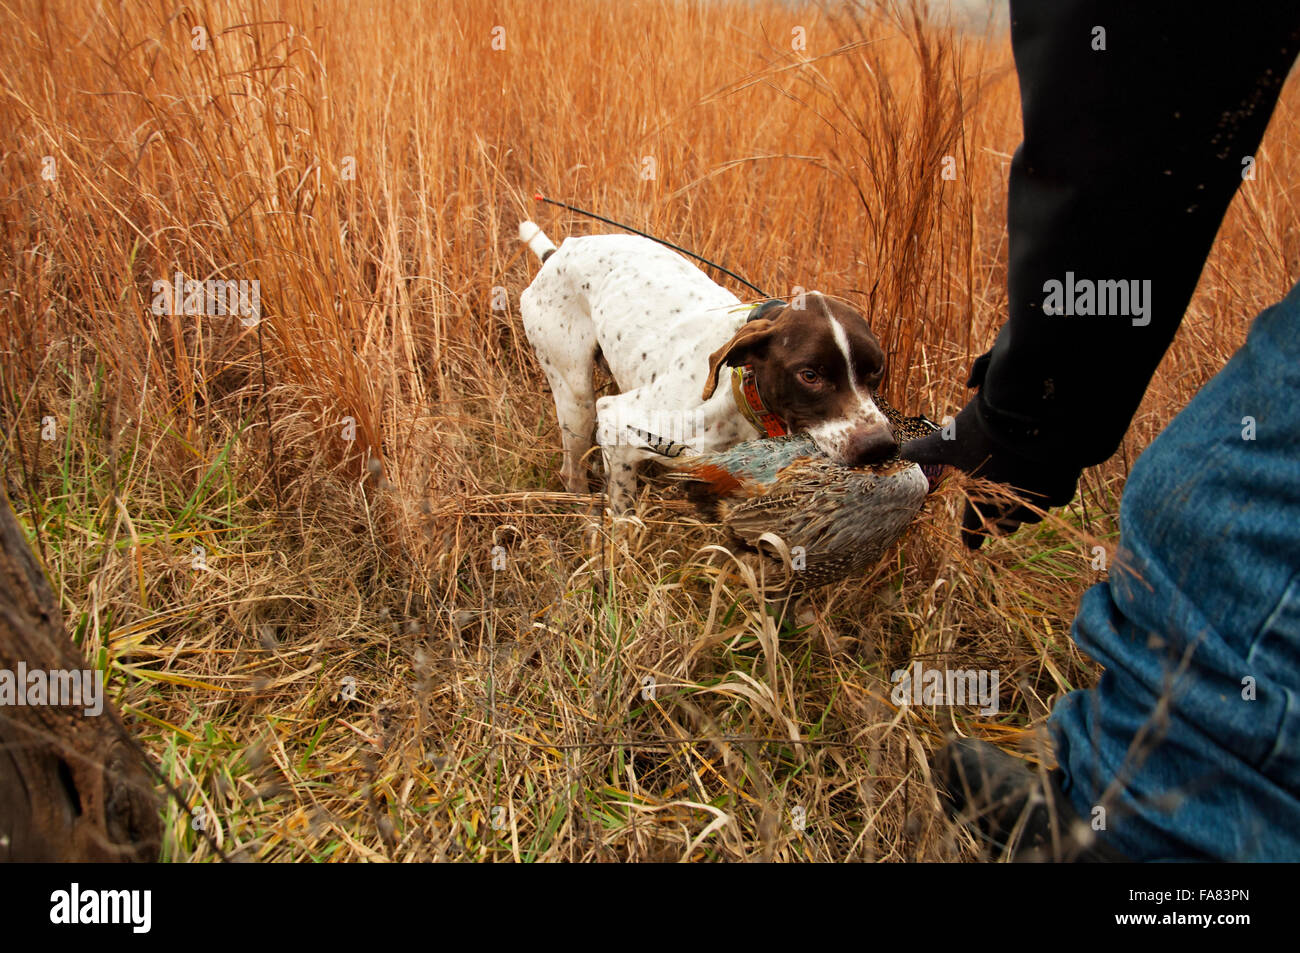 Trained German shorthair dog retrieves pheasant - Stock Image